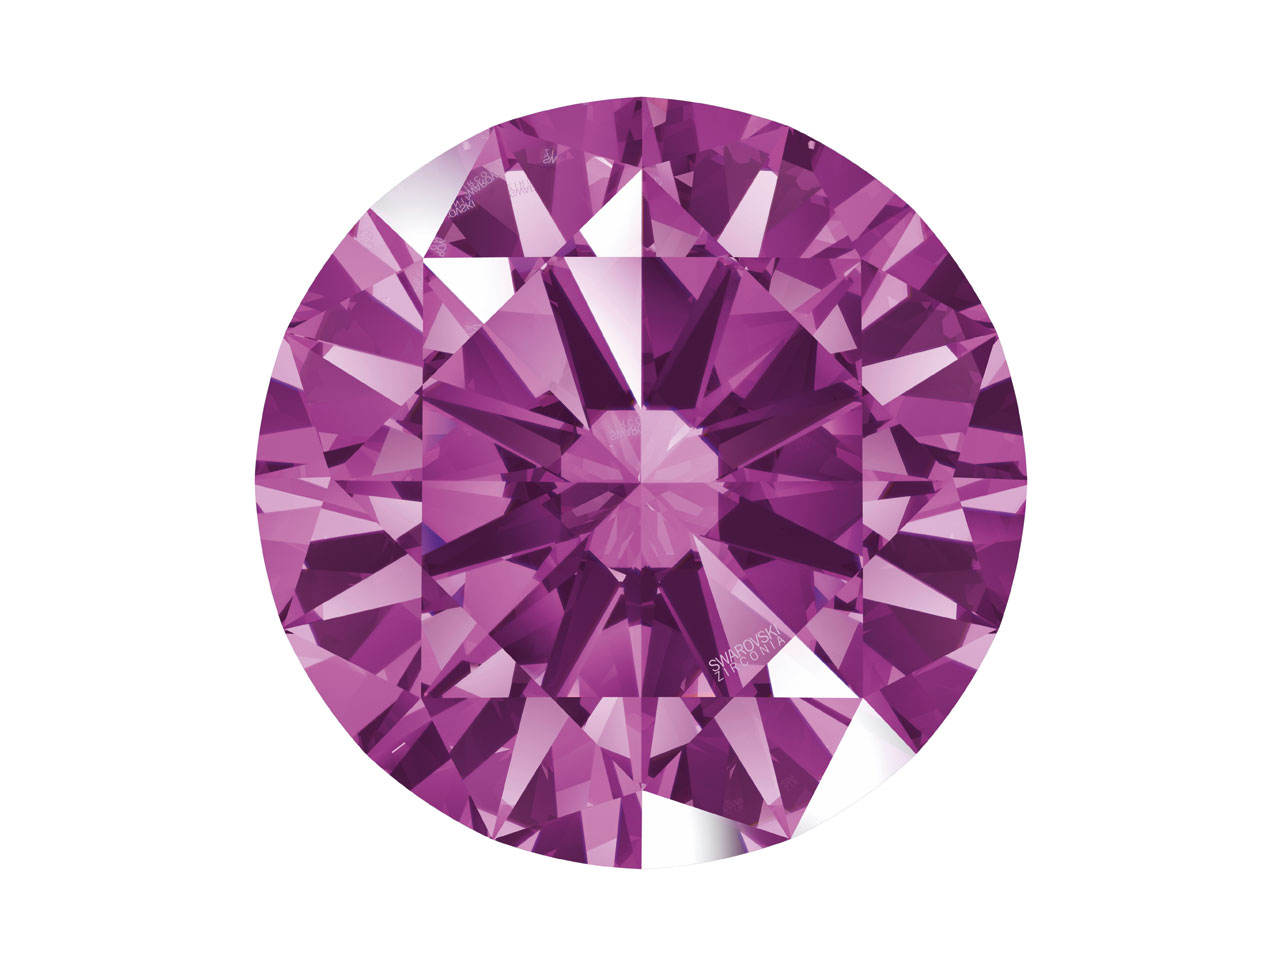 Swarovski Zirconia Round           Pure Brilliance Cut 2.5mm Fancy    Purple